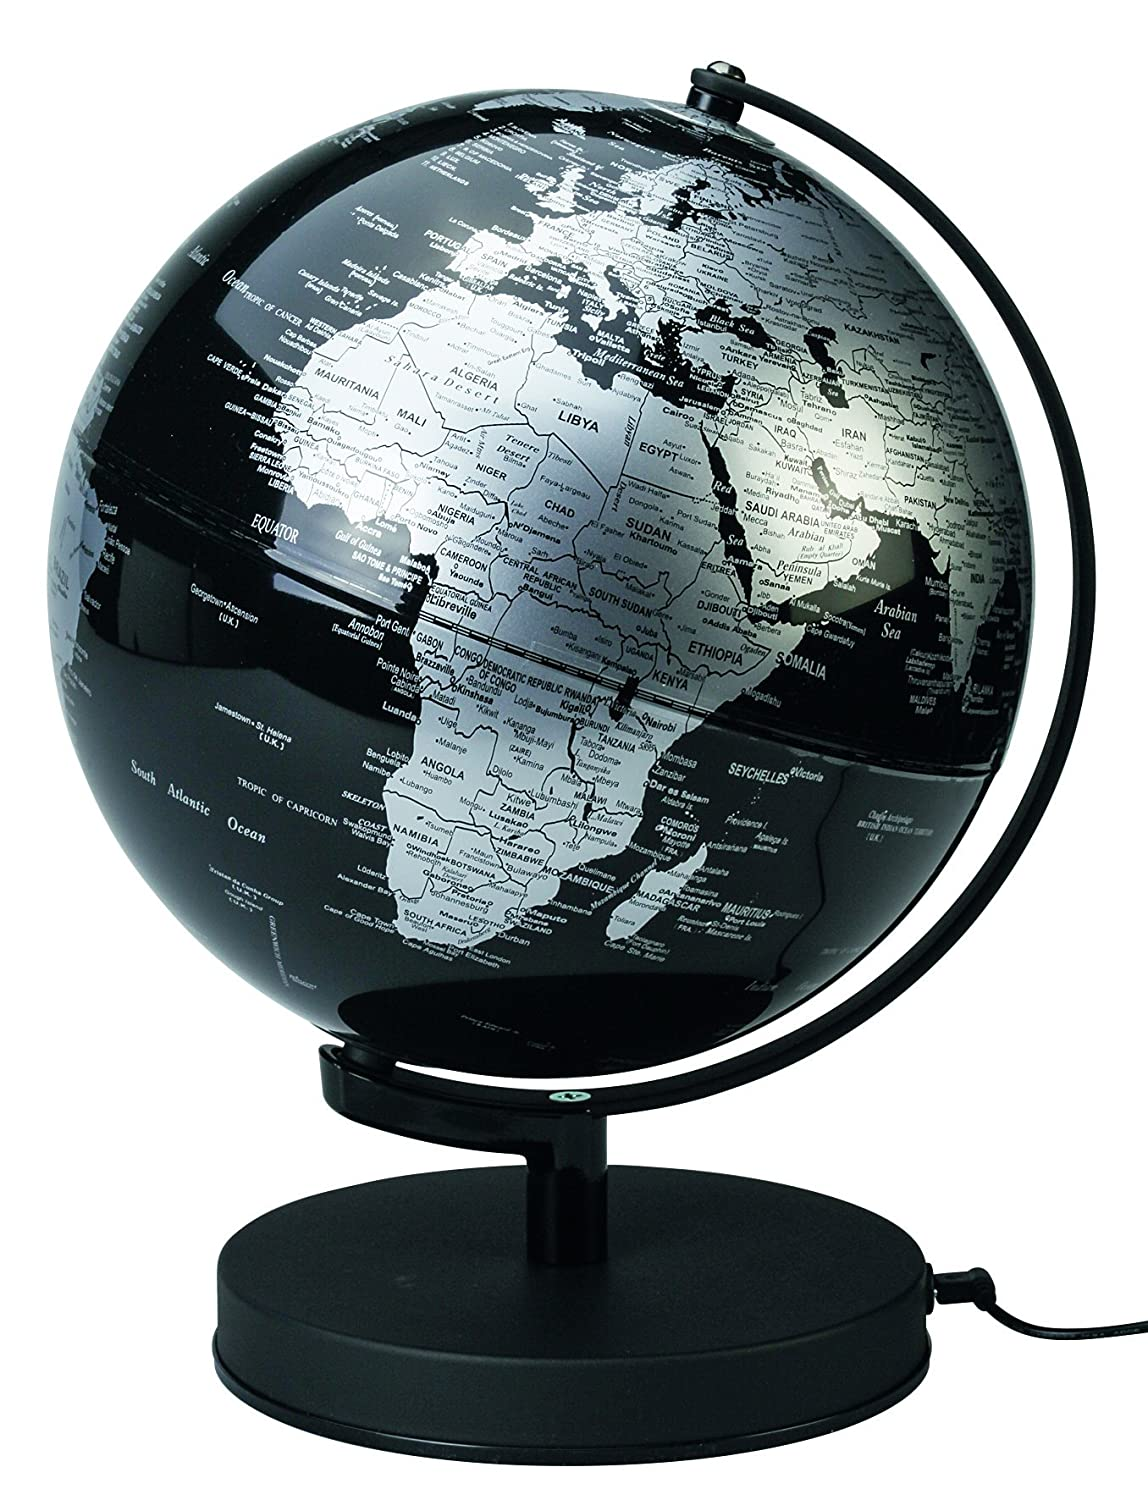 Barato Sign 23682 no Globe luminoso 25 cm Negro